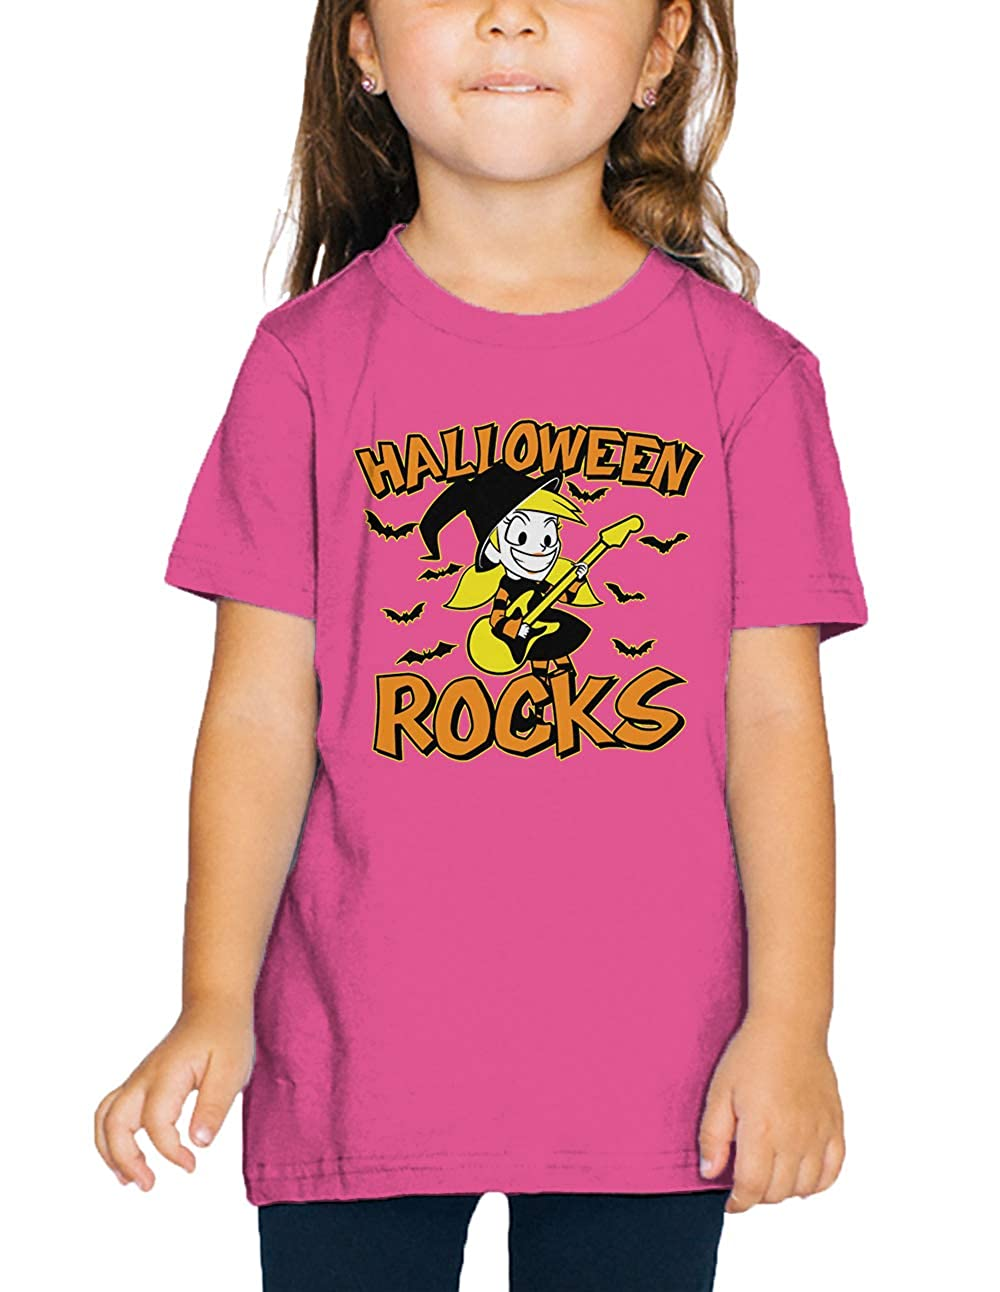 SpiritForged Apparel Halloween Rocks Witch Toddler T-Shirt